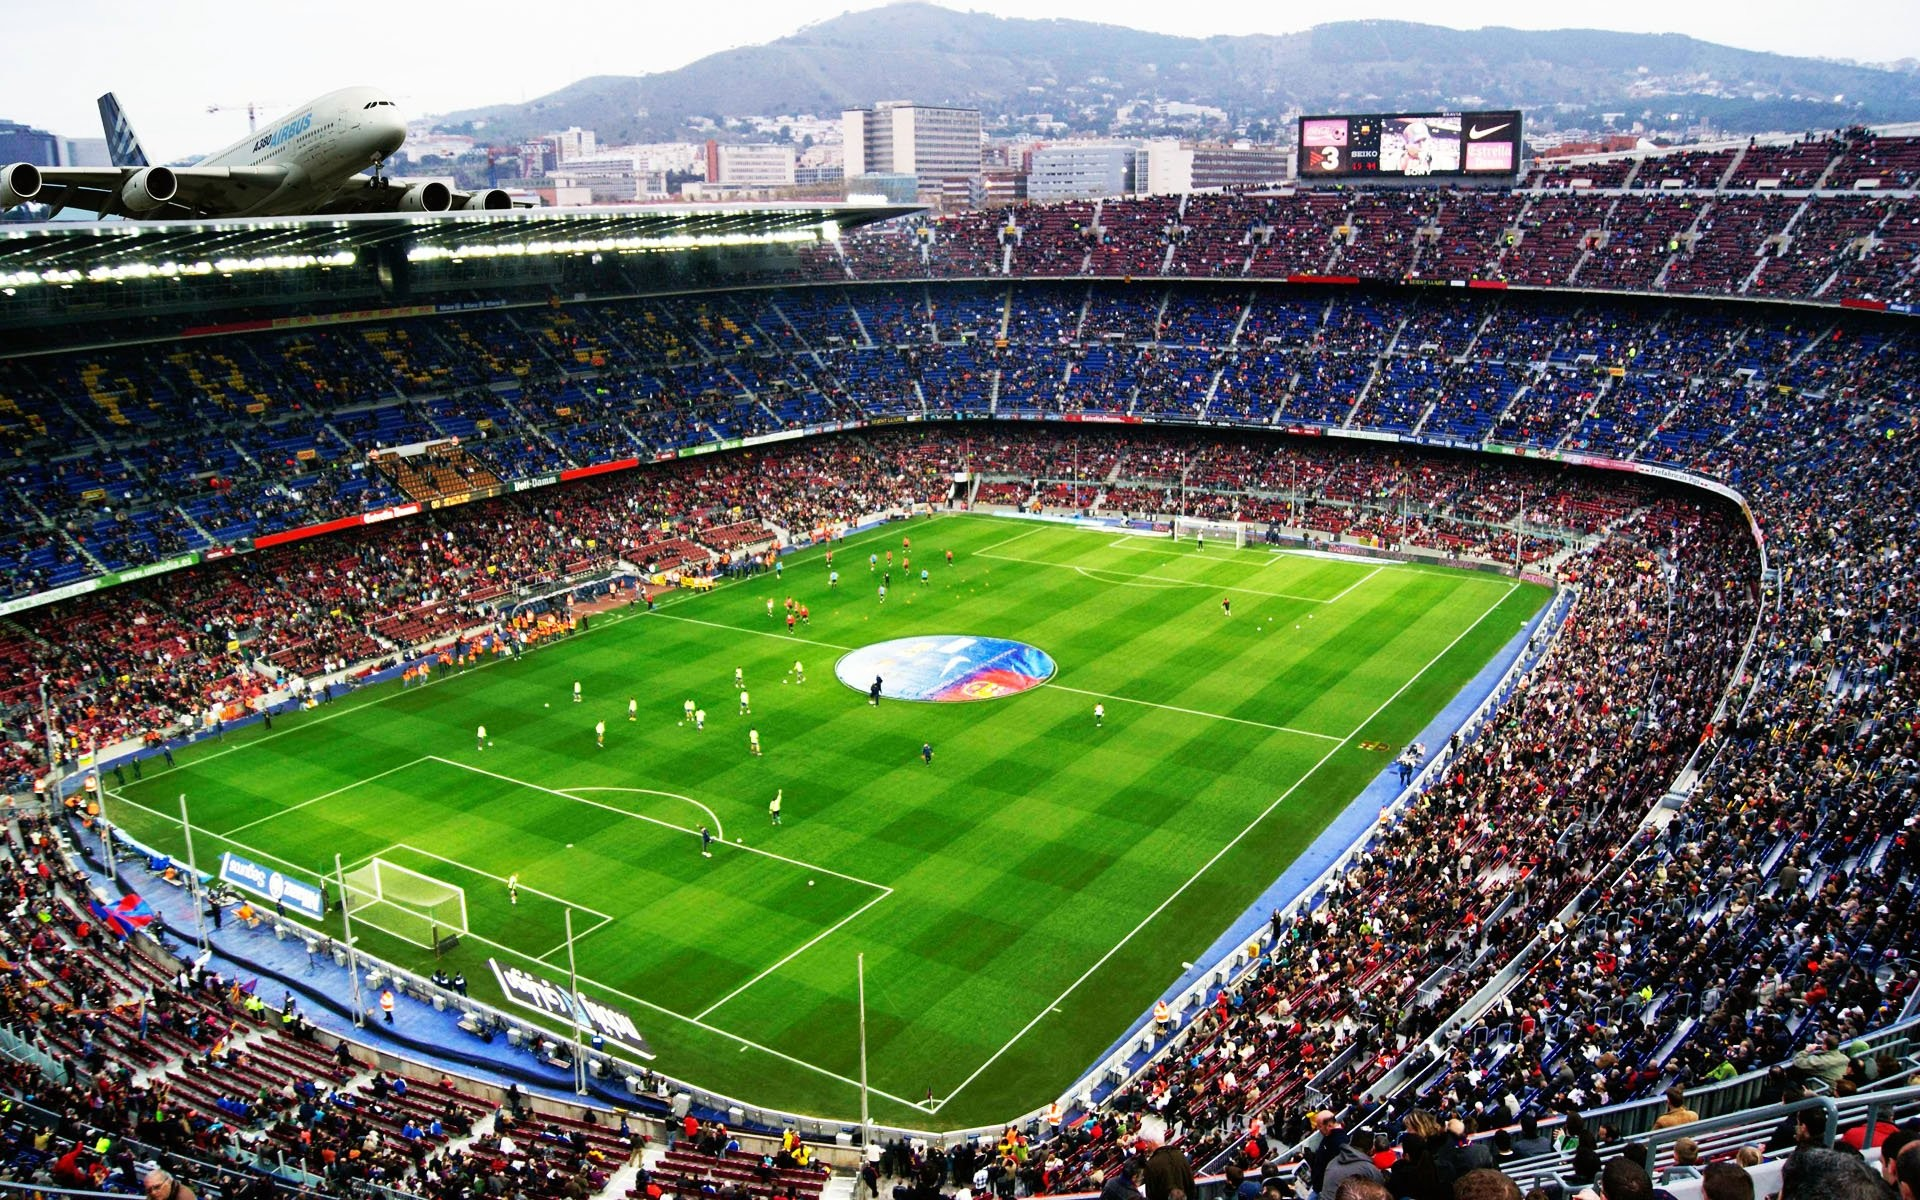 1920x1200 Camp Nou Stadium FC Barcelona Football Wicked Wallpaper FREE